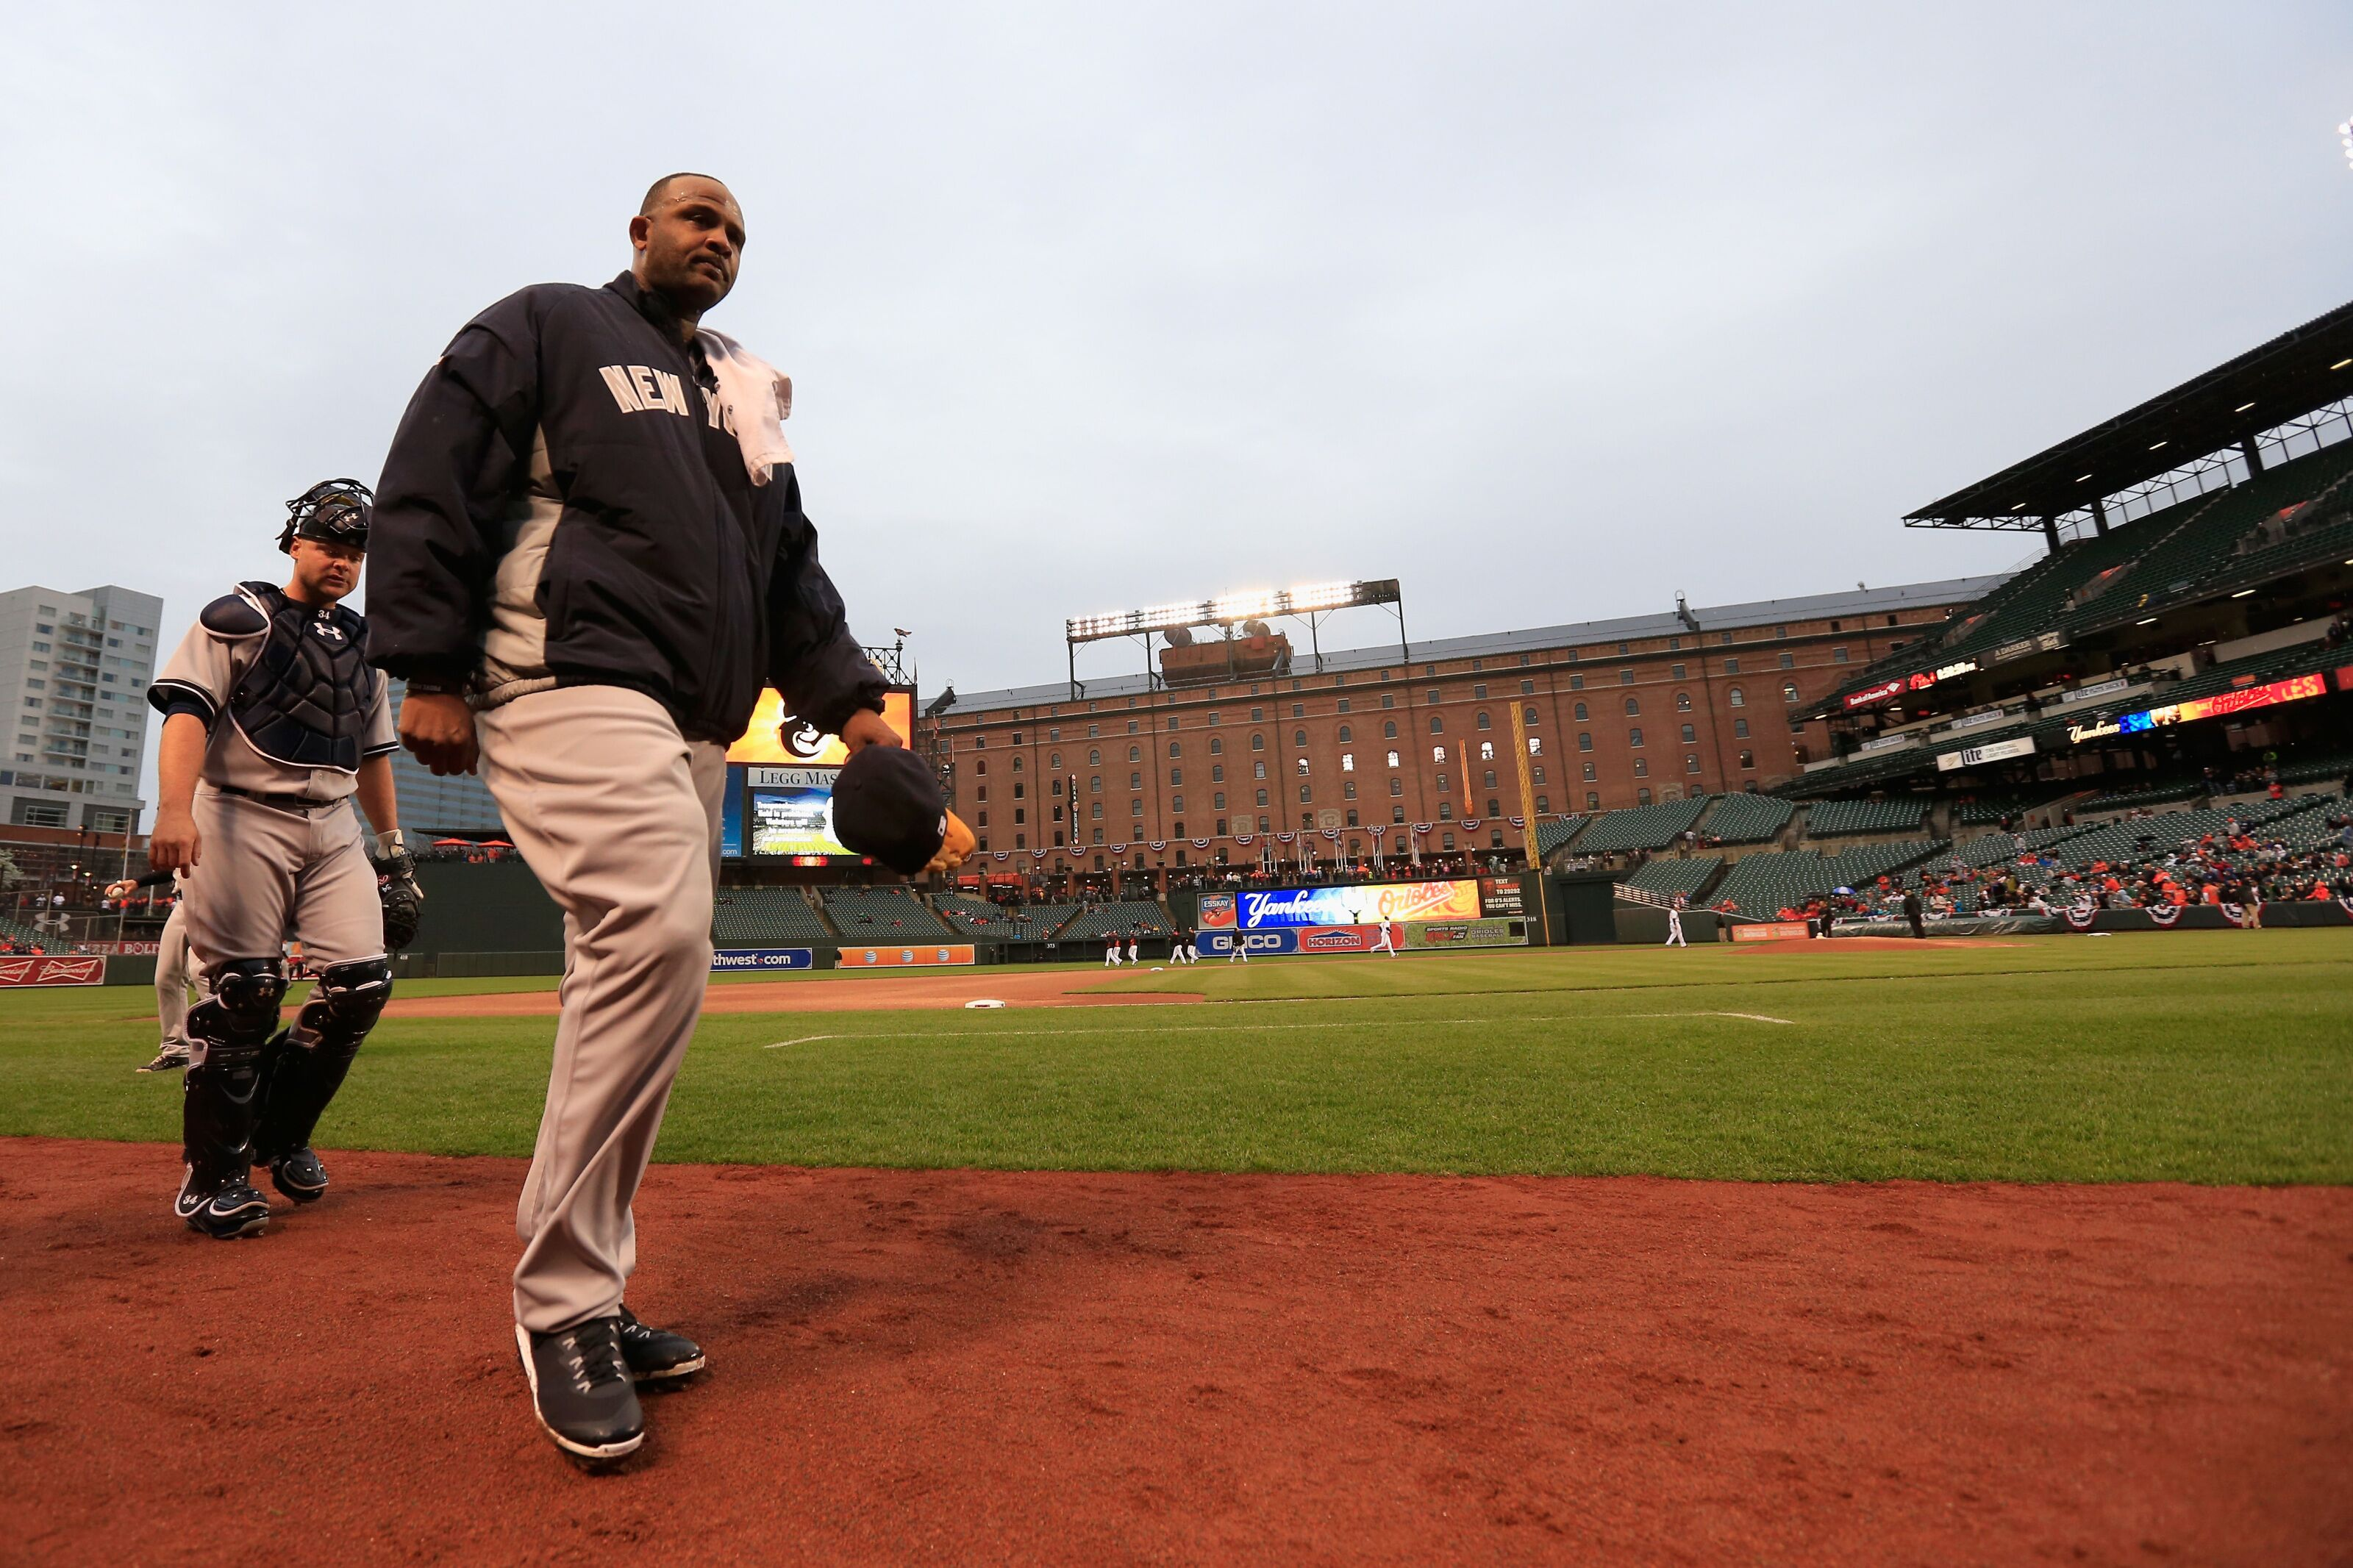 Baltimore Orioles: A Deserved Hat Tip To CC Sabathia